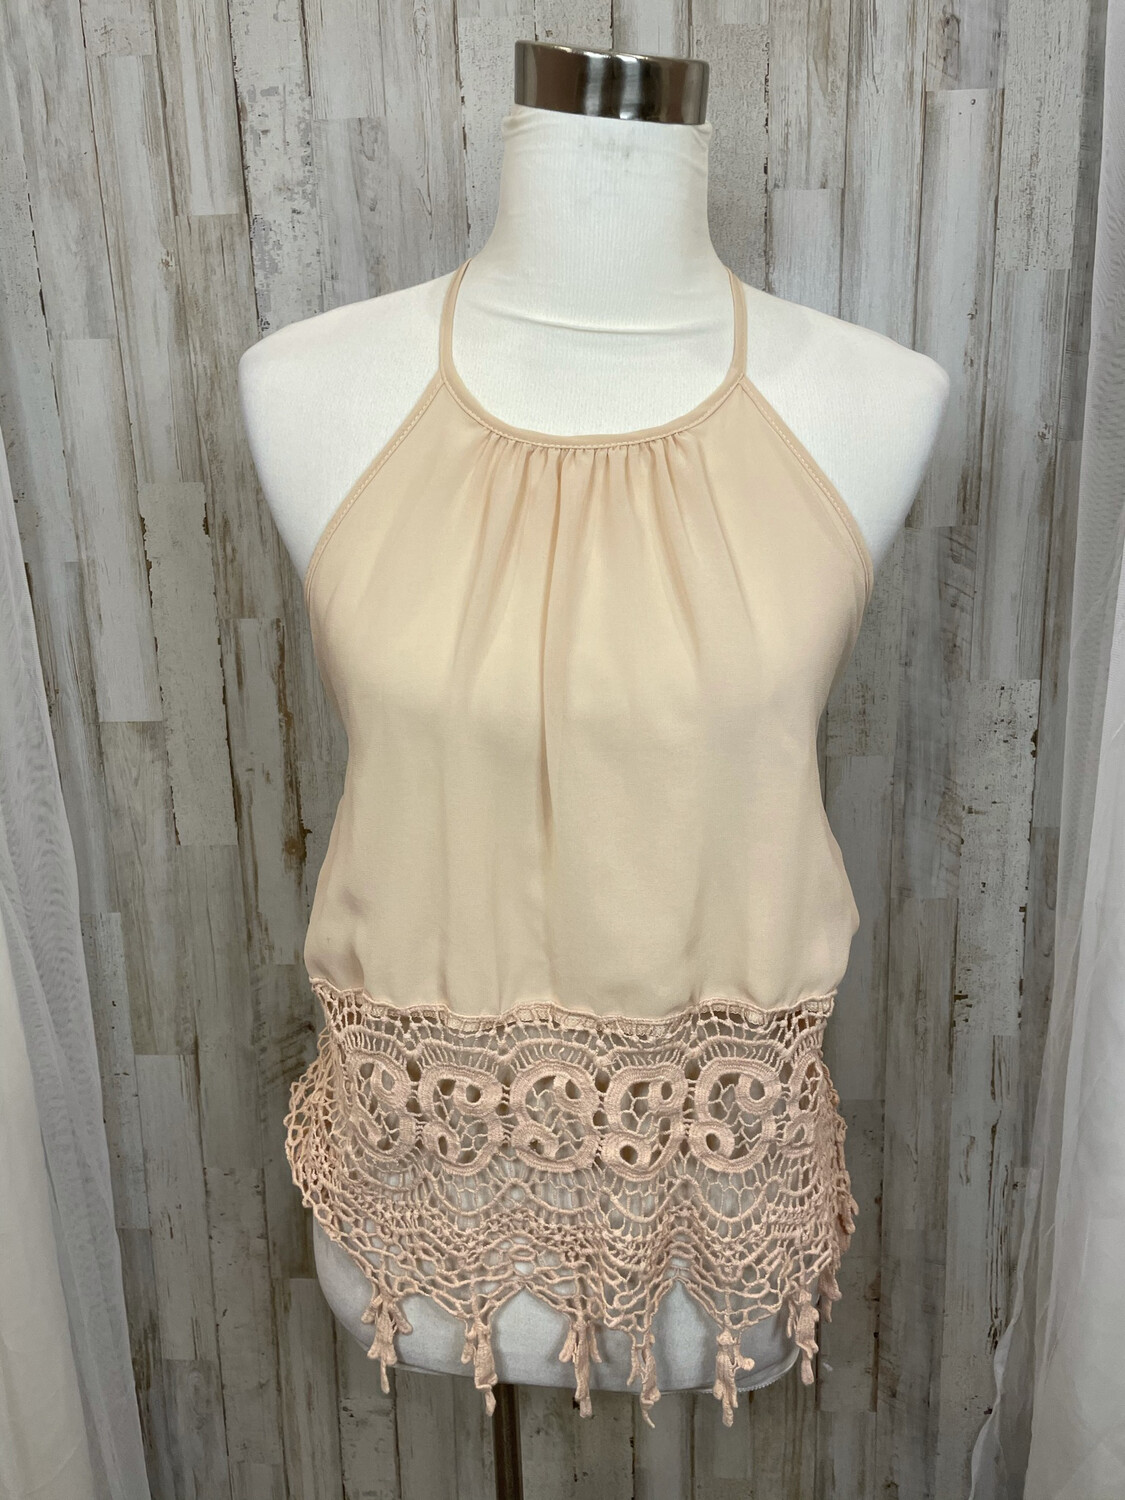 Buttons Tan Halter w/ Embroidered Trim - S